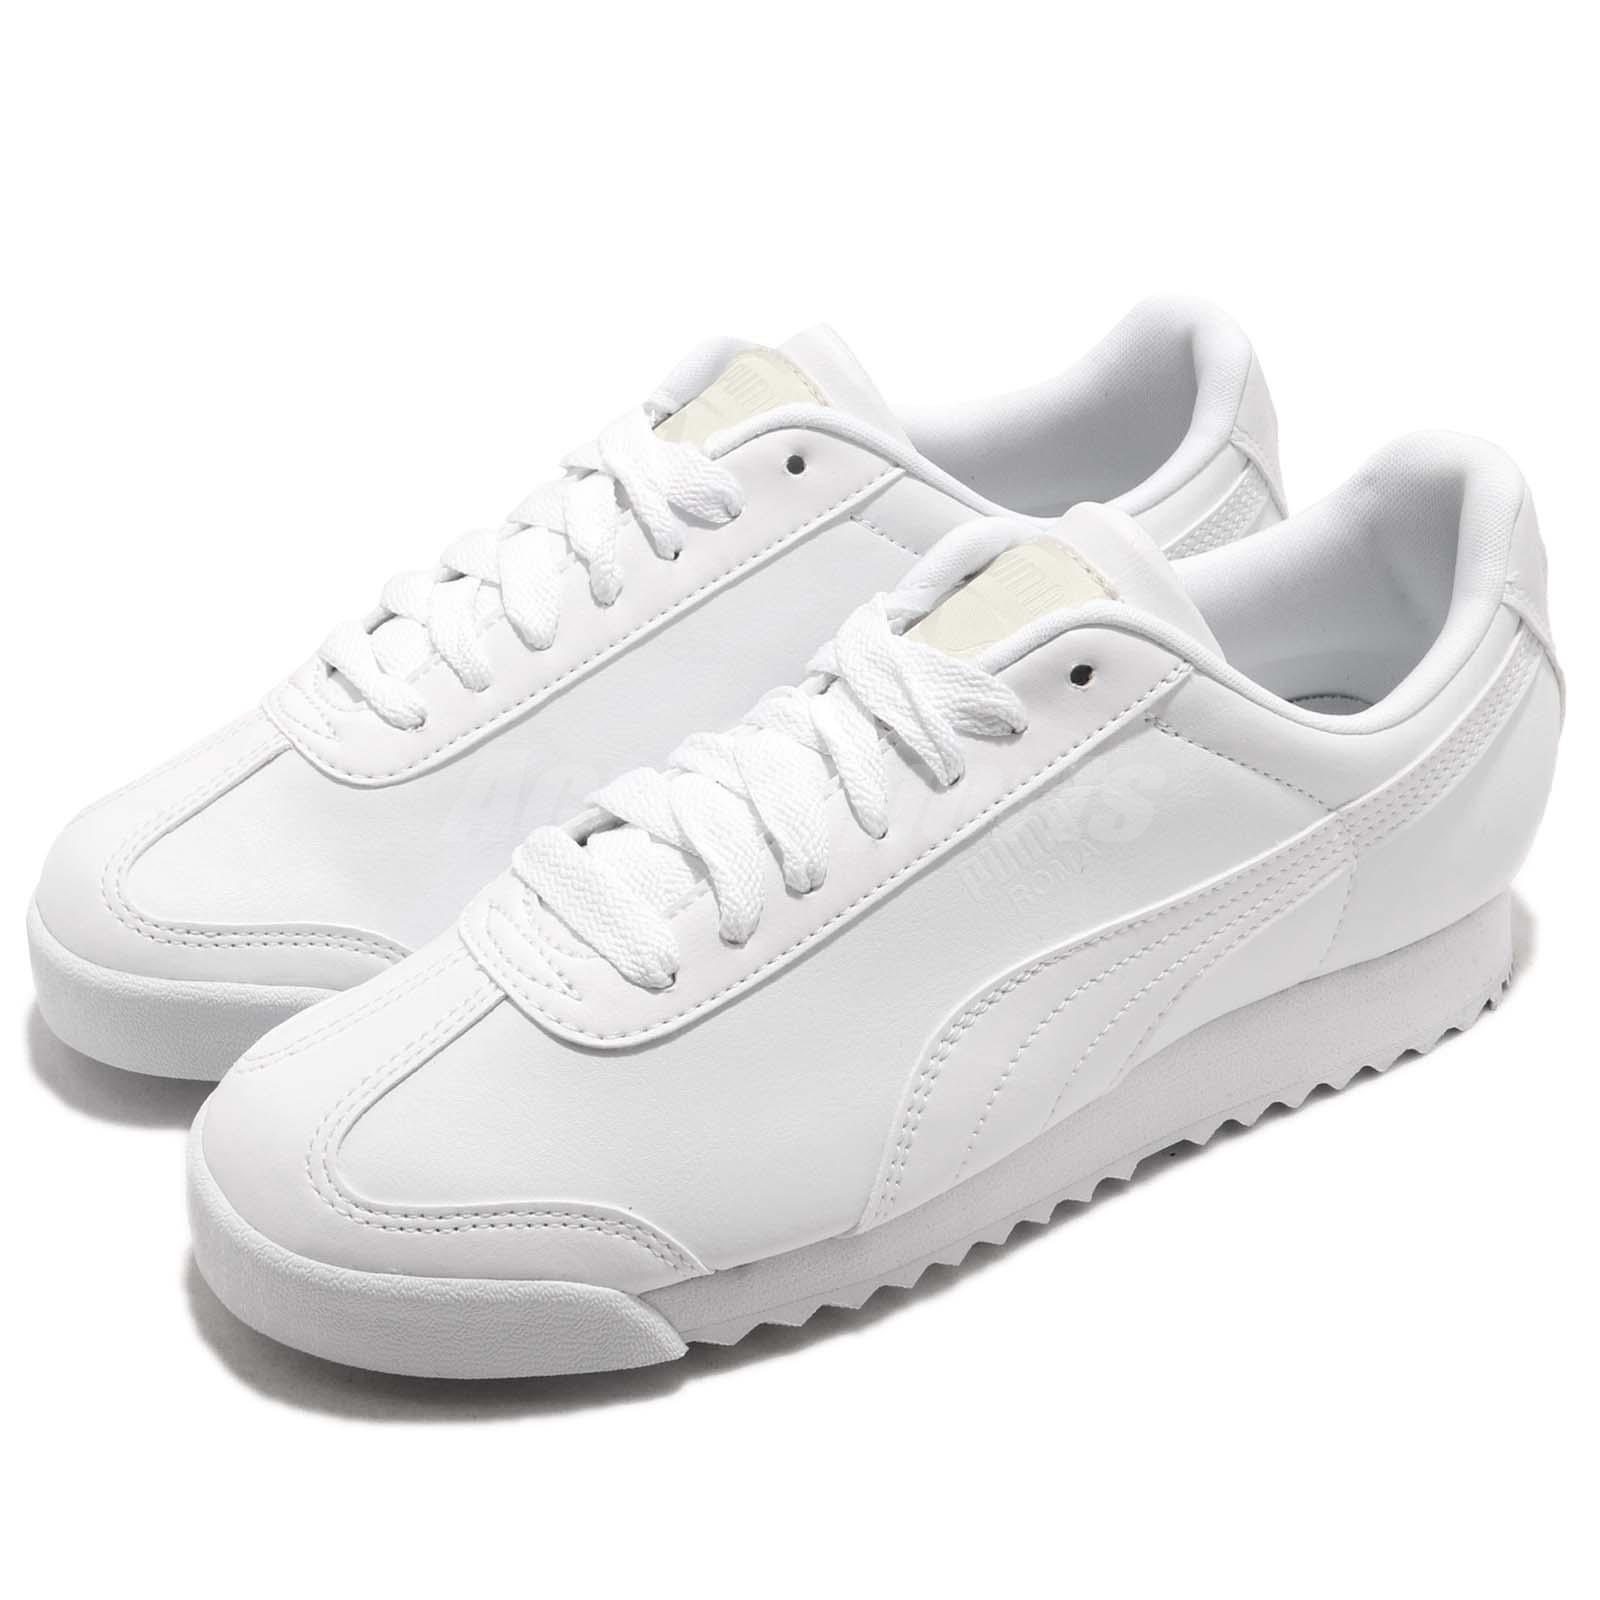 2dc2e3b835 Details about Puma Roma Basic White Men Women Running Walking Casual Shoes  Sneakers 353572-21